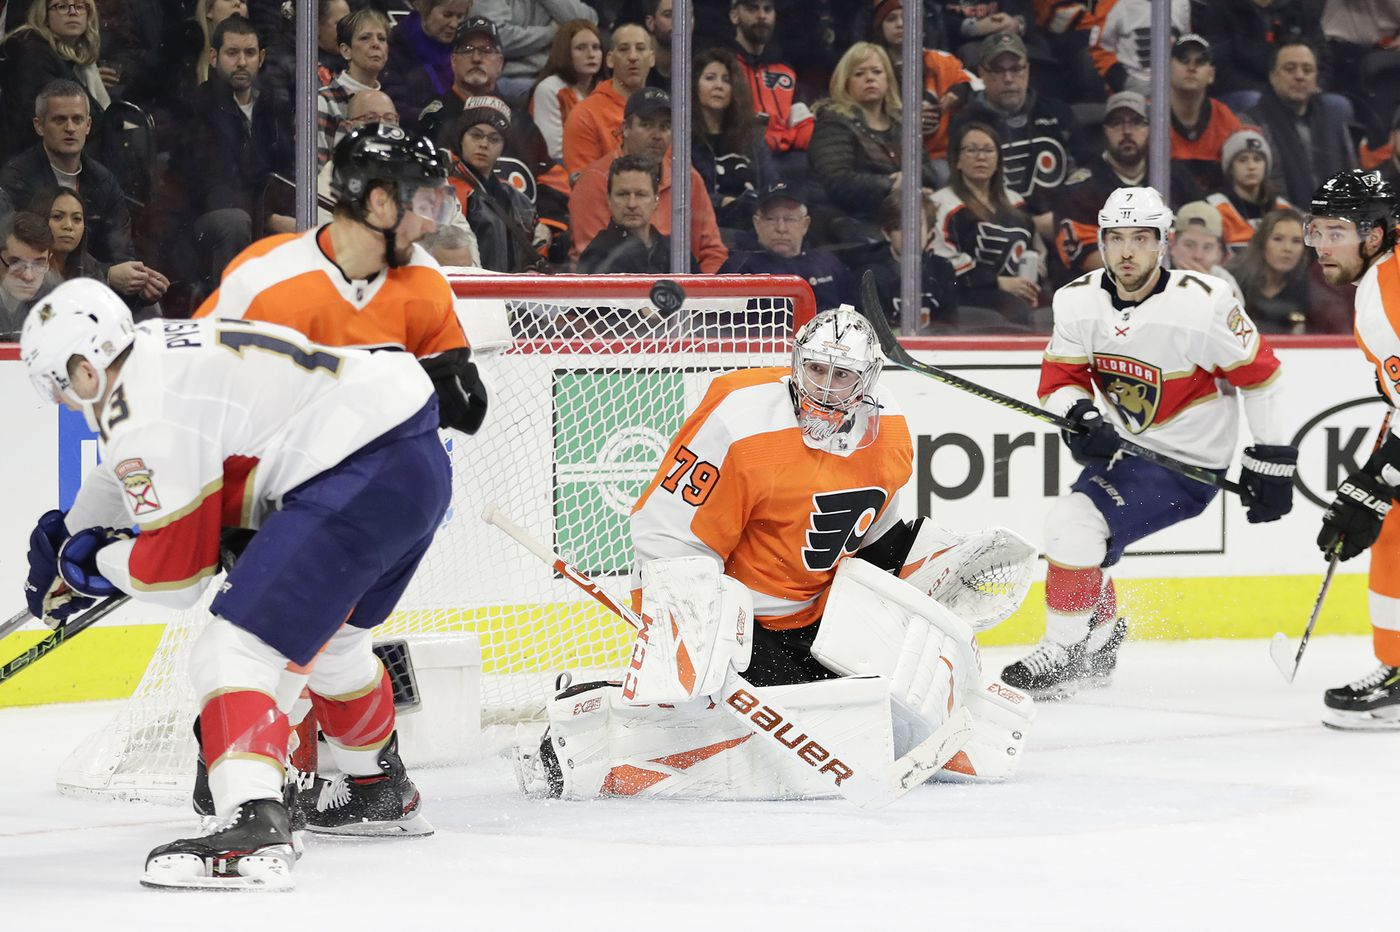 Flyers goalie Carter Hart searching for road success | On the Fly